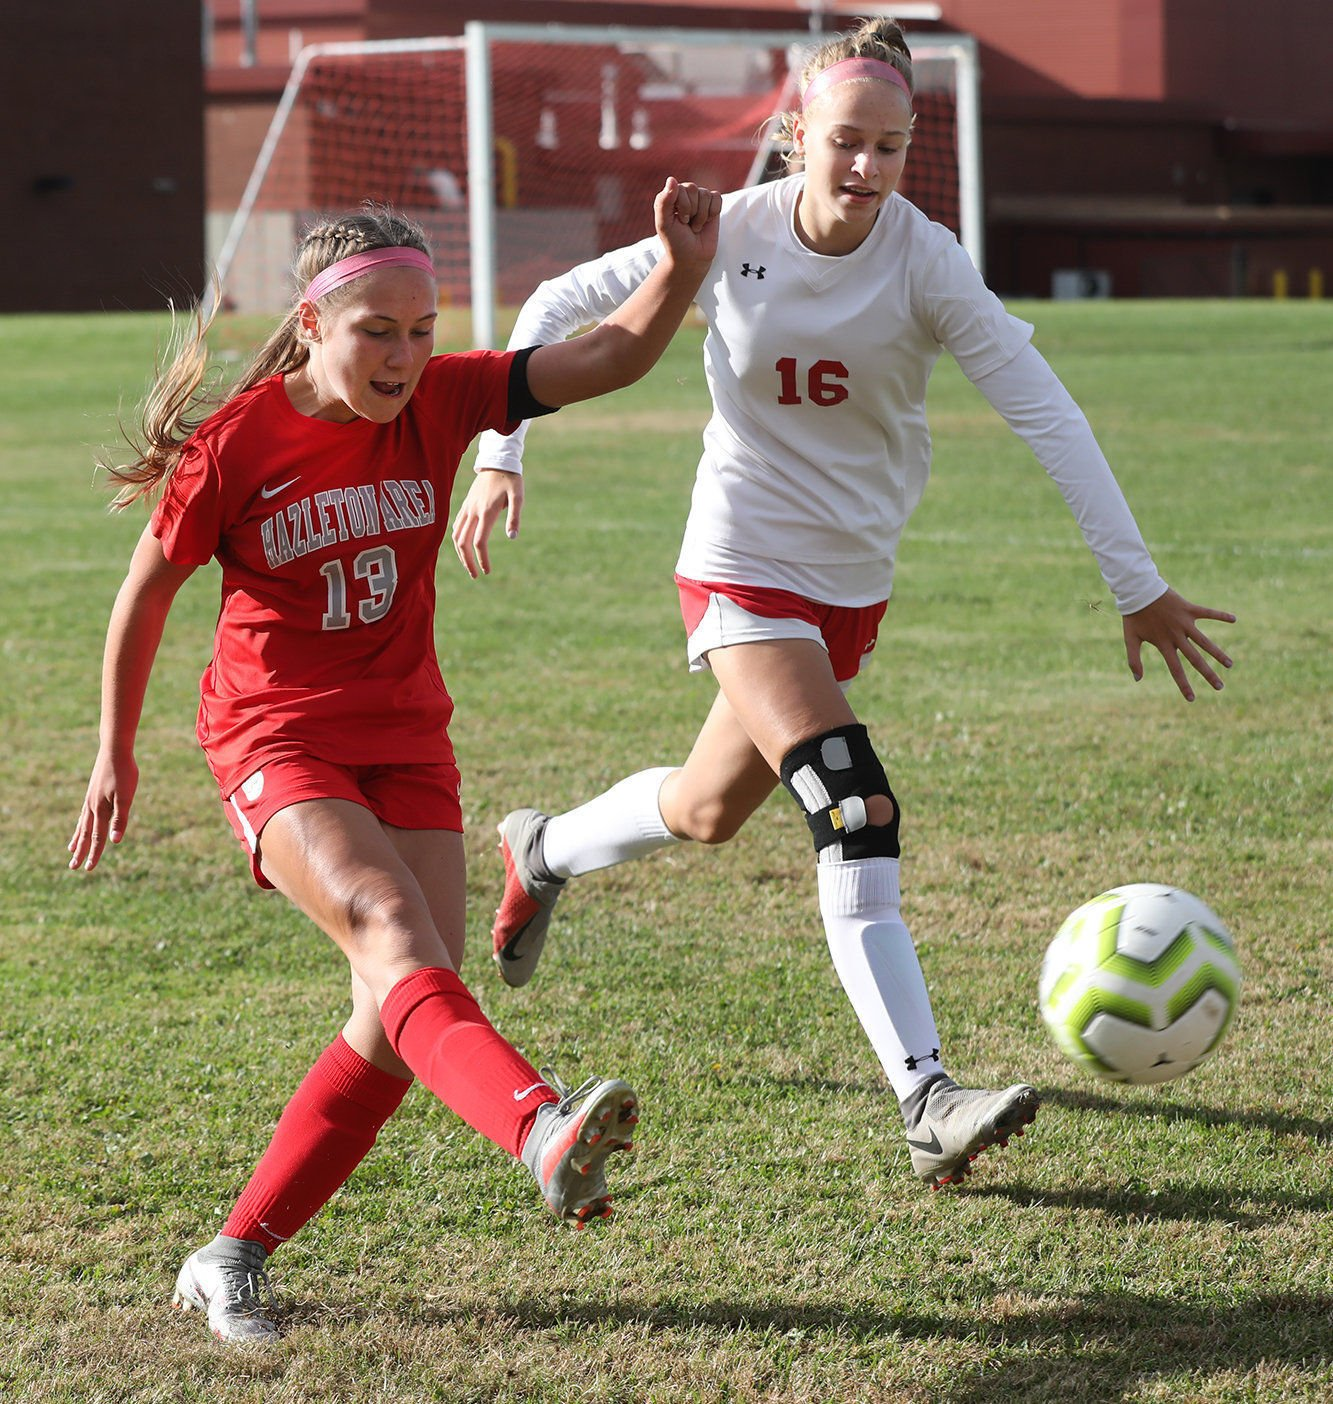 Reese Kaschak, Lady Cougars score late to topple Crestwood